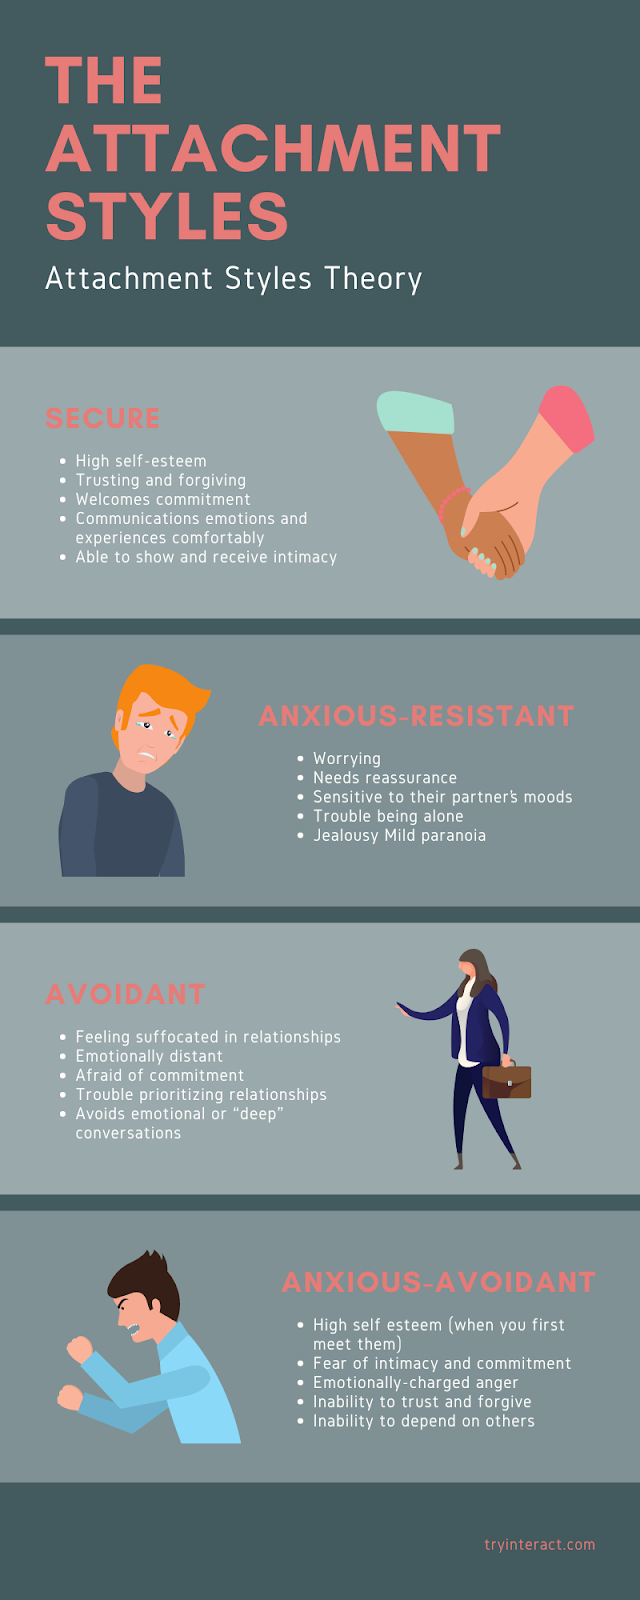 infographic showing the 4 attachment styles